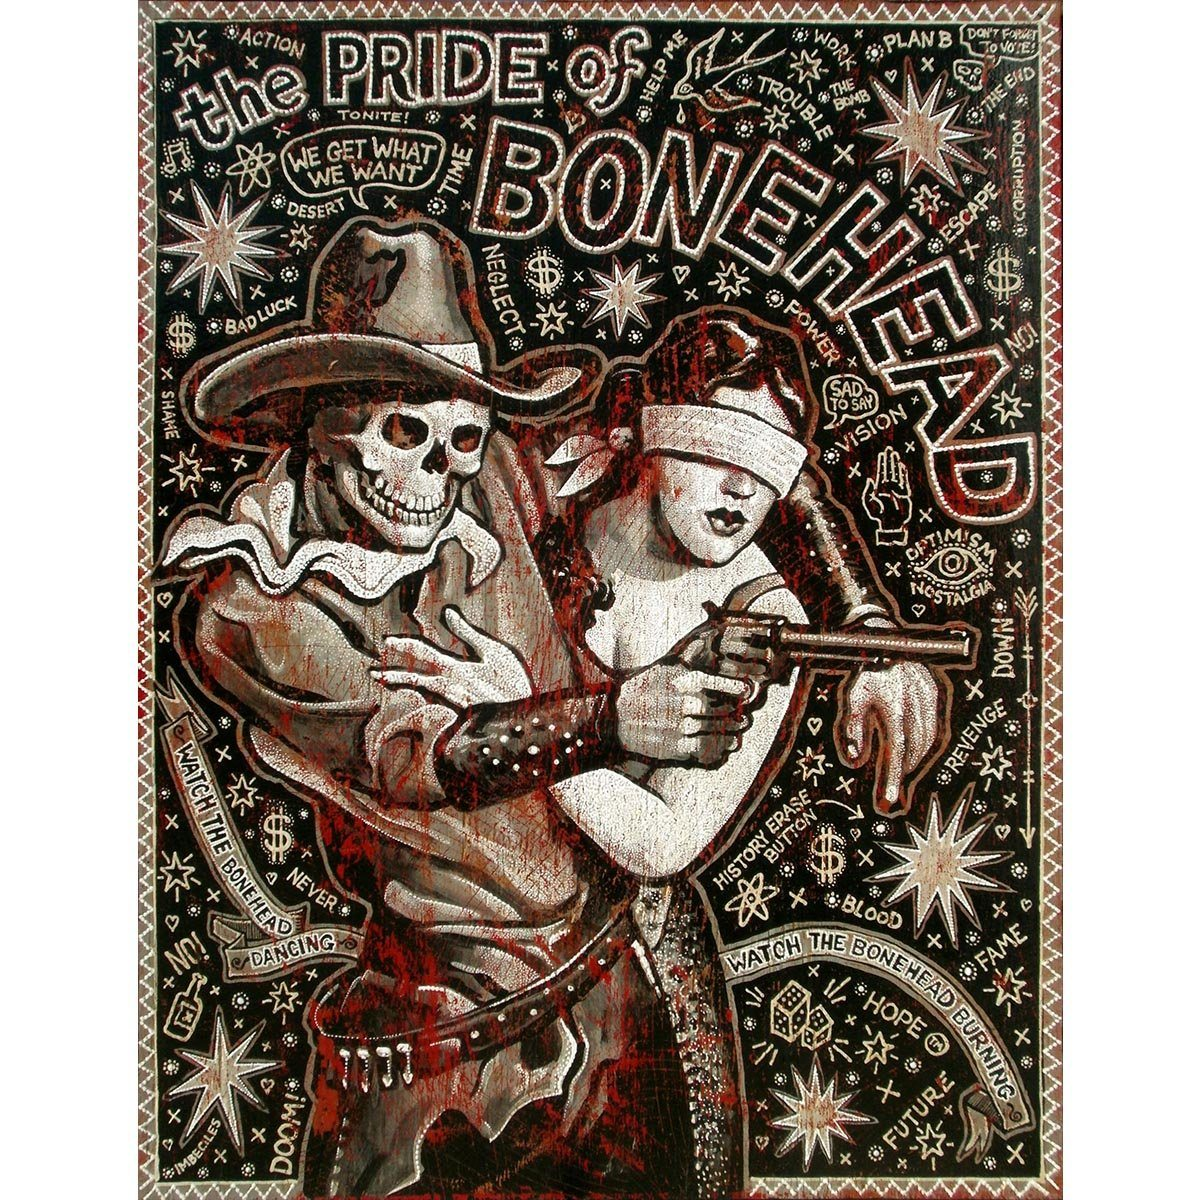 Pride Of The Bonehead - Jon Langford - Yard Dog Art